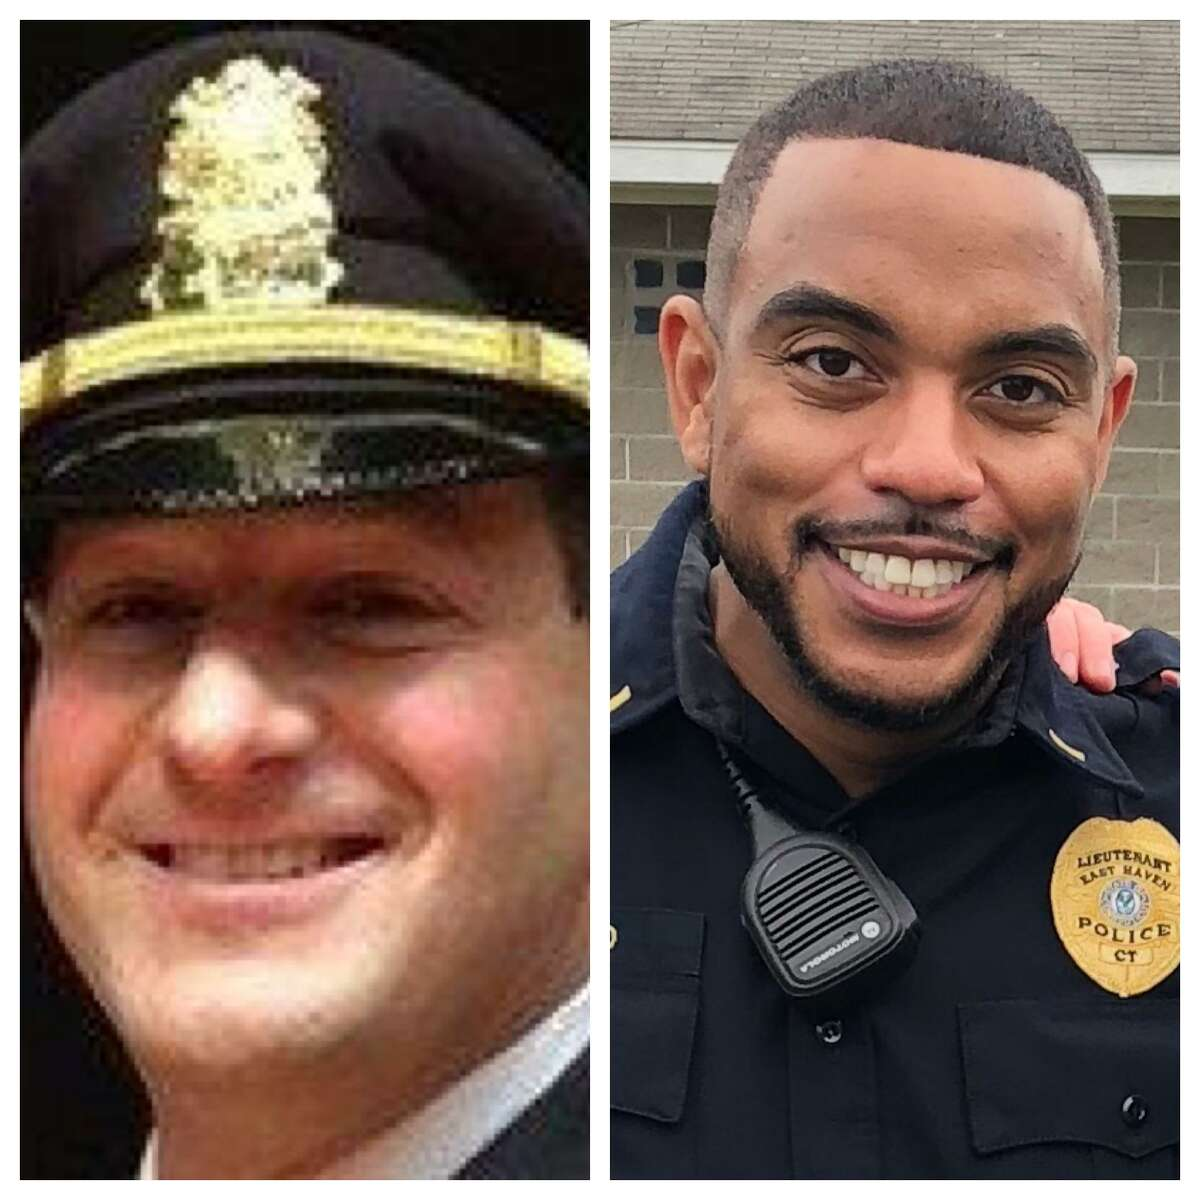 Soon-to-be captains David Emerman, left, and Joseph Murgo, right, of the East Haven Police Department